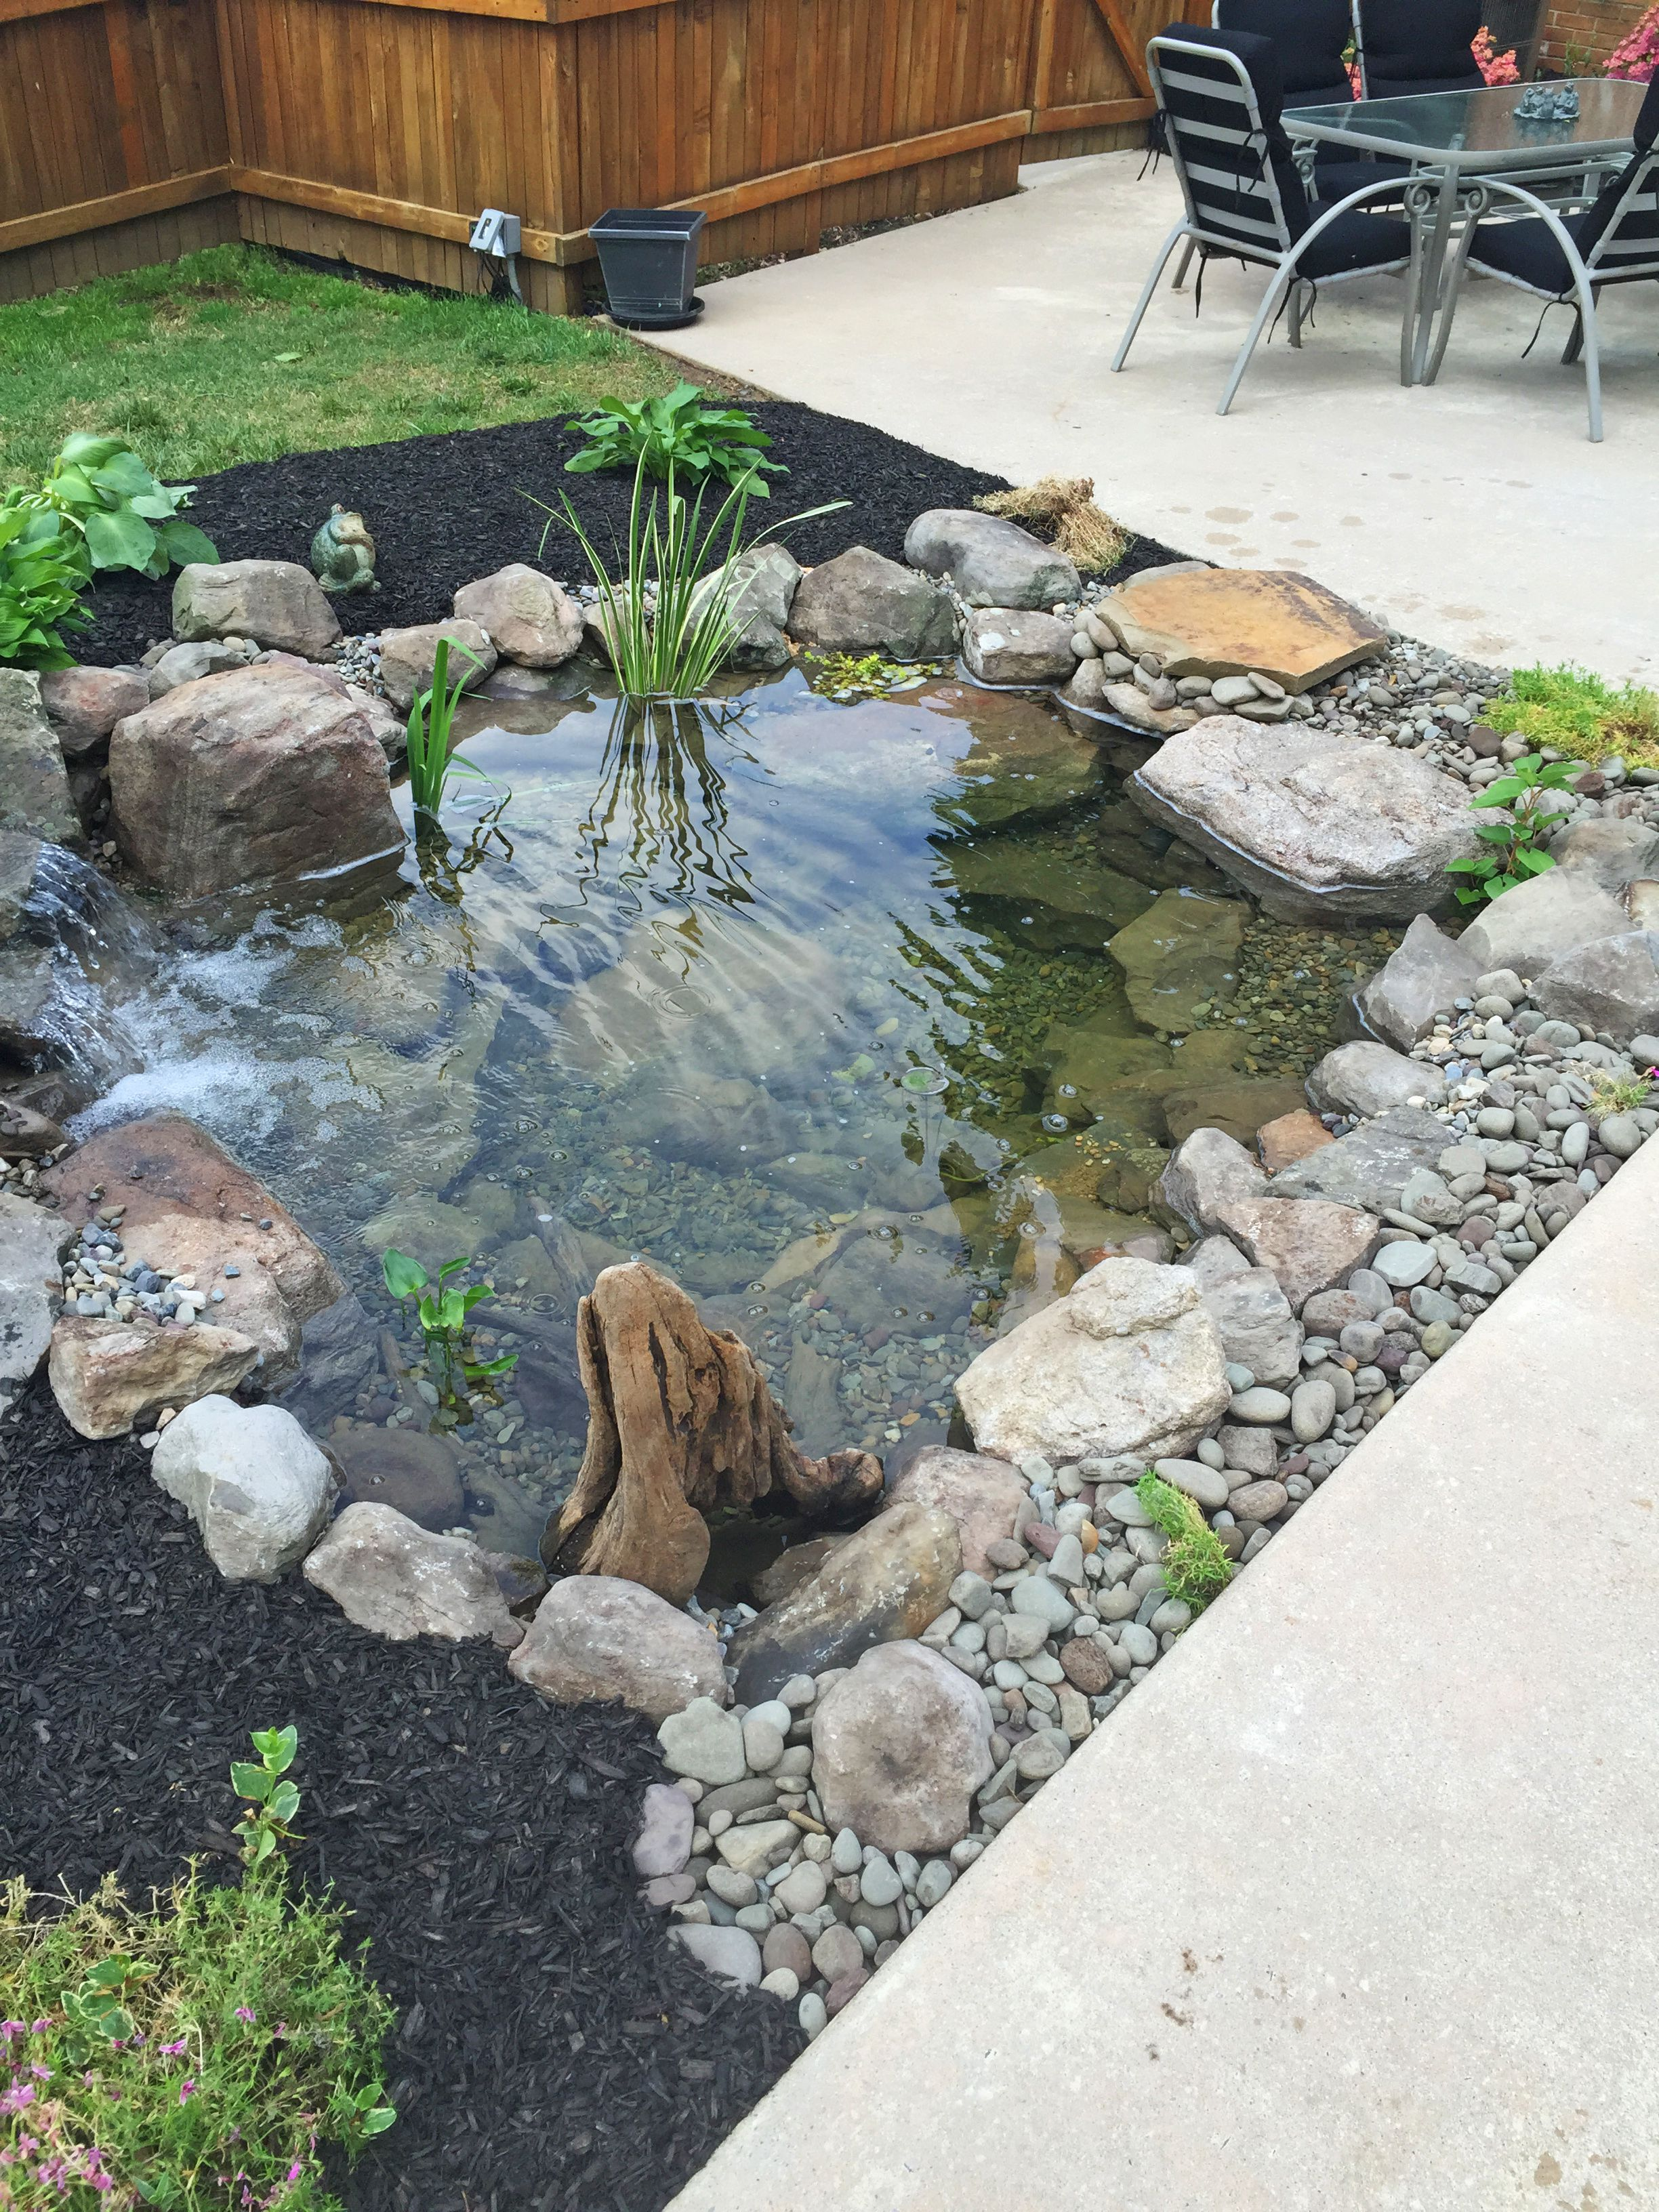 Backyard fish pond waterfall koi water garden waterscapes for Backyard pond plants and fish